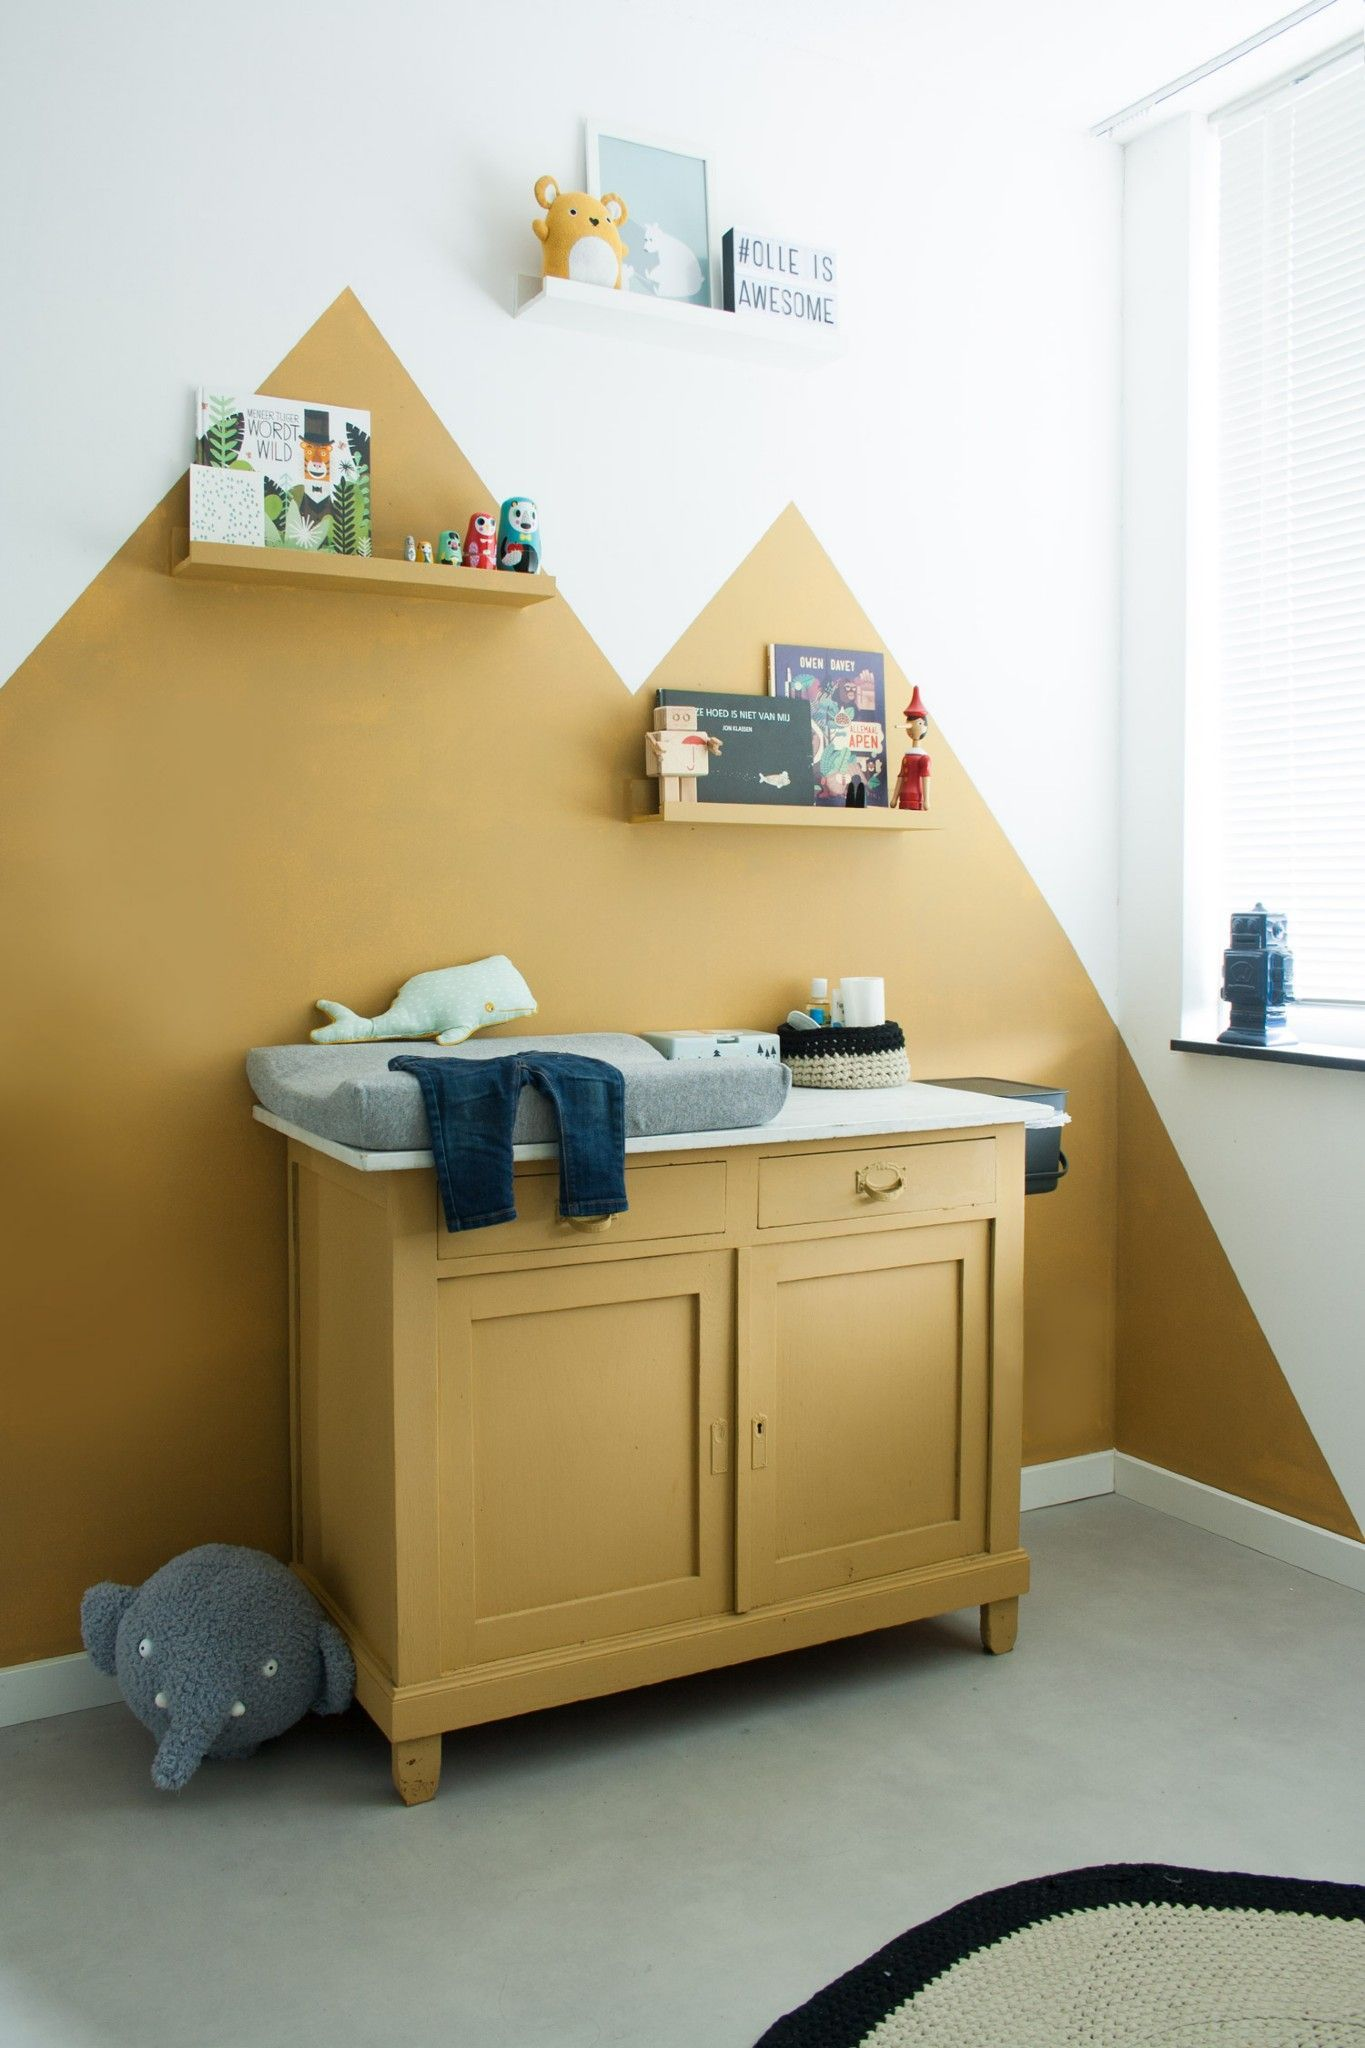 Baby Room In Muted Yellow Children S Room Color Idea Baby Childrens Color Idea Muted Room In 2020 Baby Nursery Furniture Baby Room Decor Home Decor Bedroom